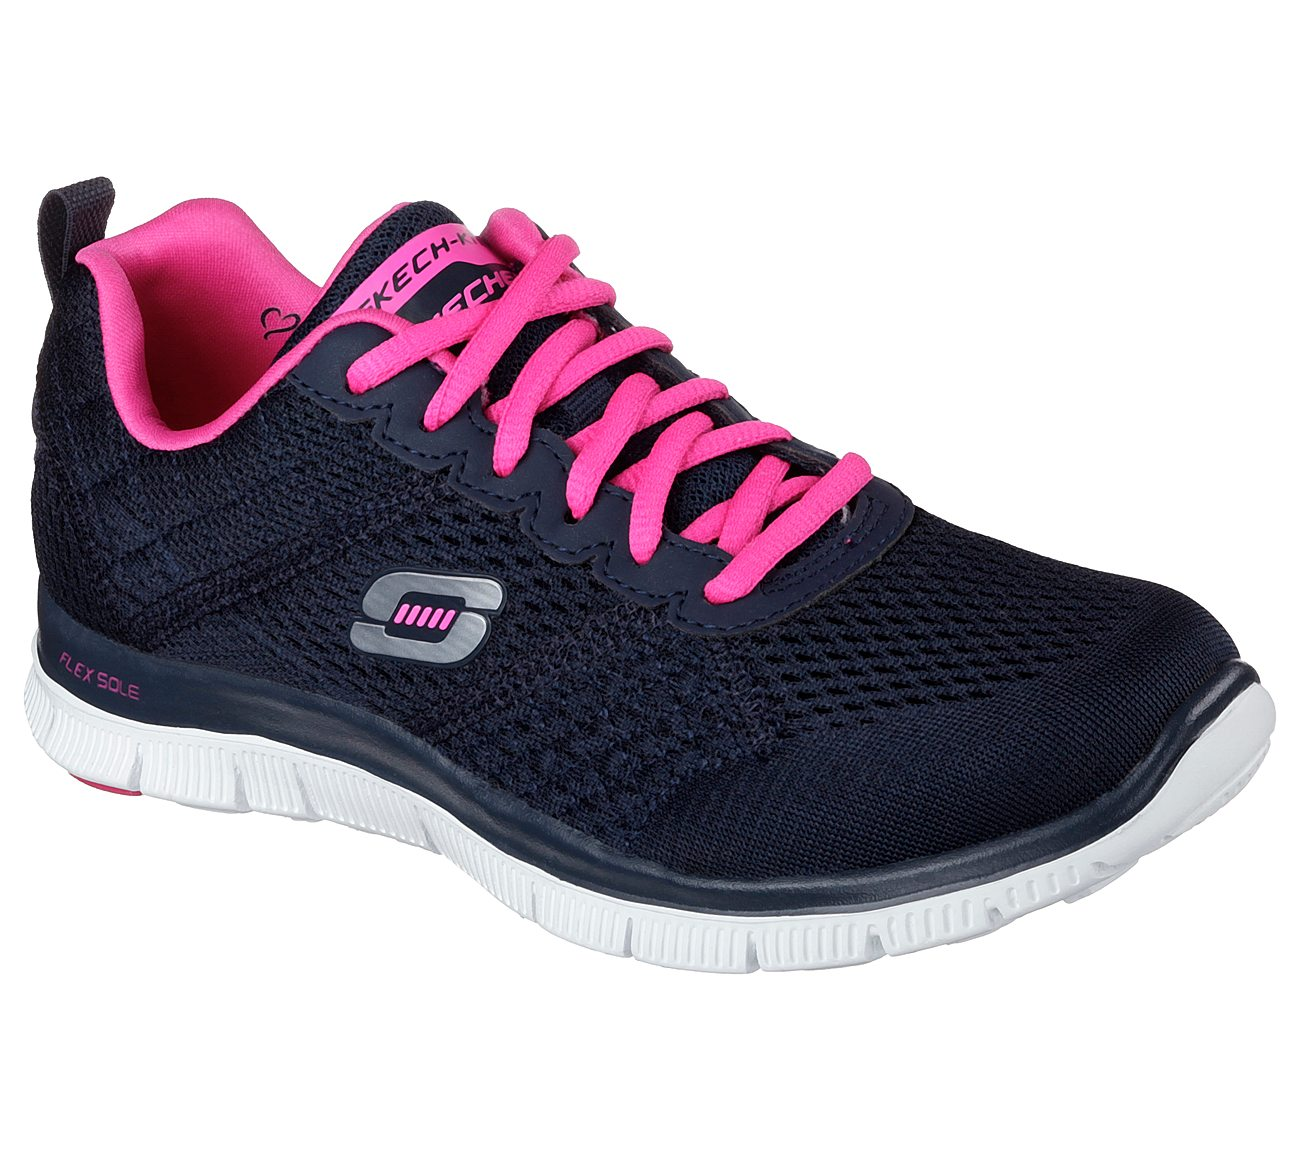 Buy SKECHERS Flex Appeal - Obvious